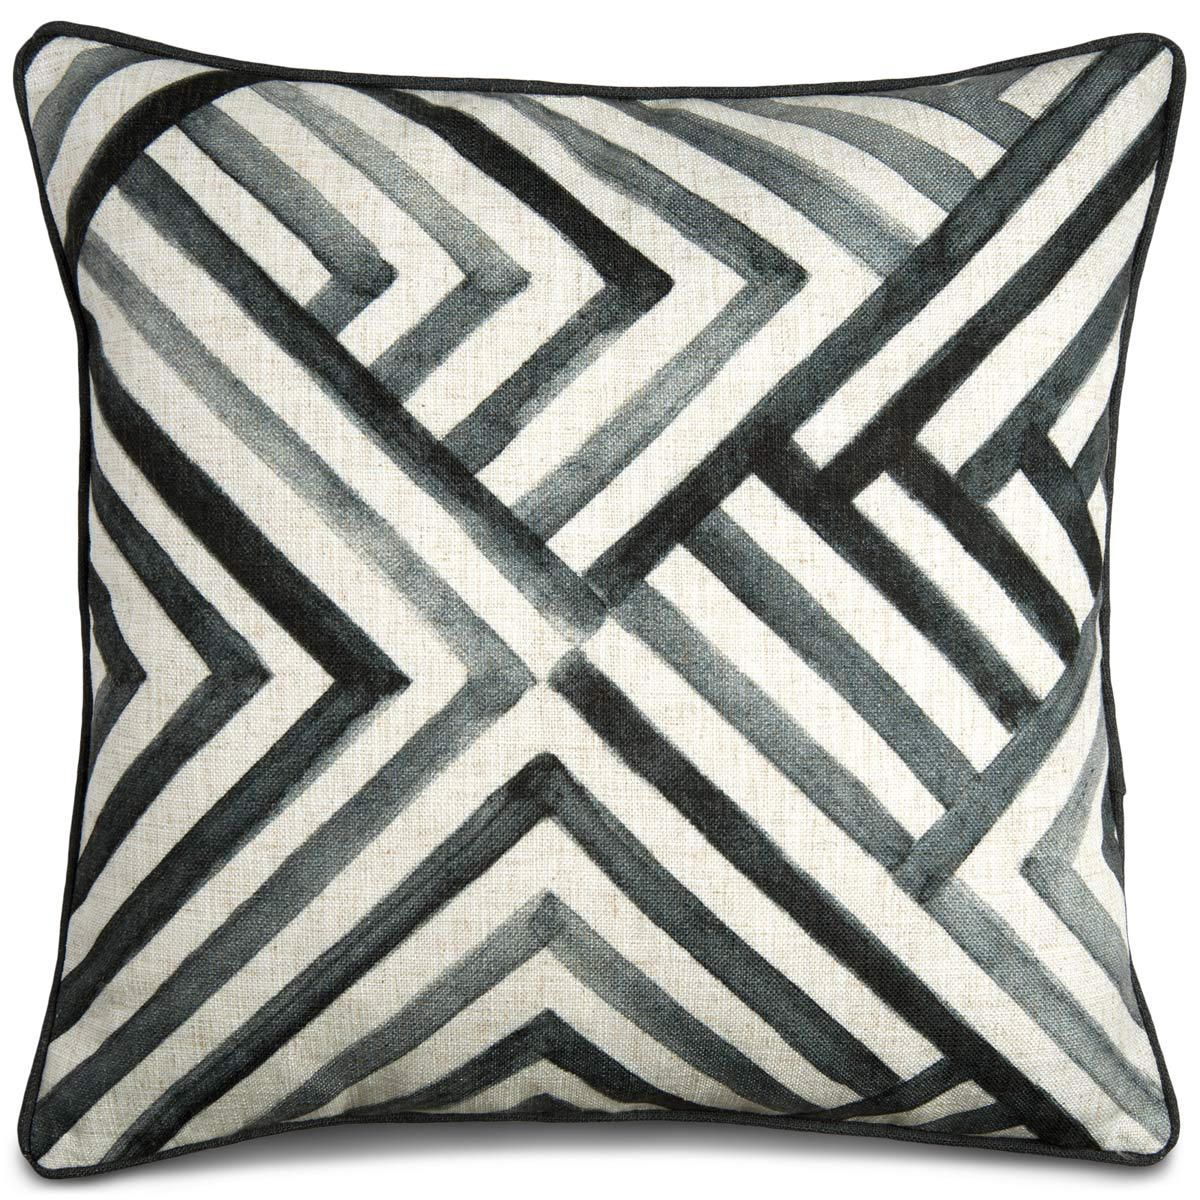 Modern Geometric Watercolor Pillow Black - ModShop1.com